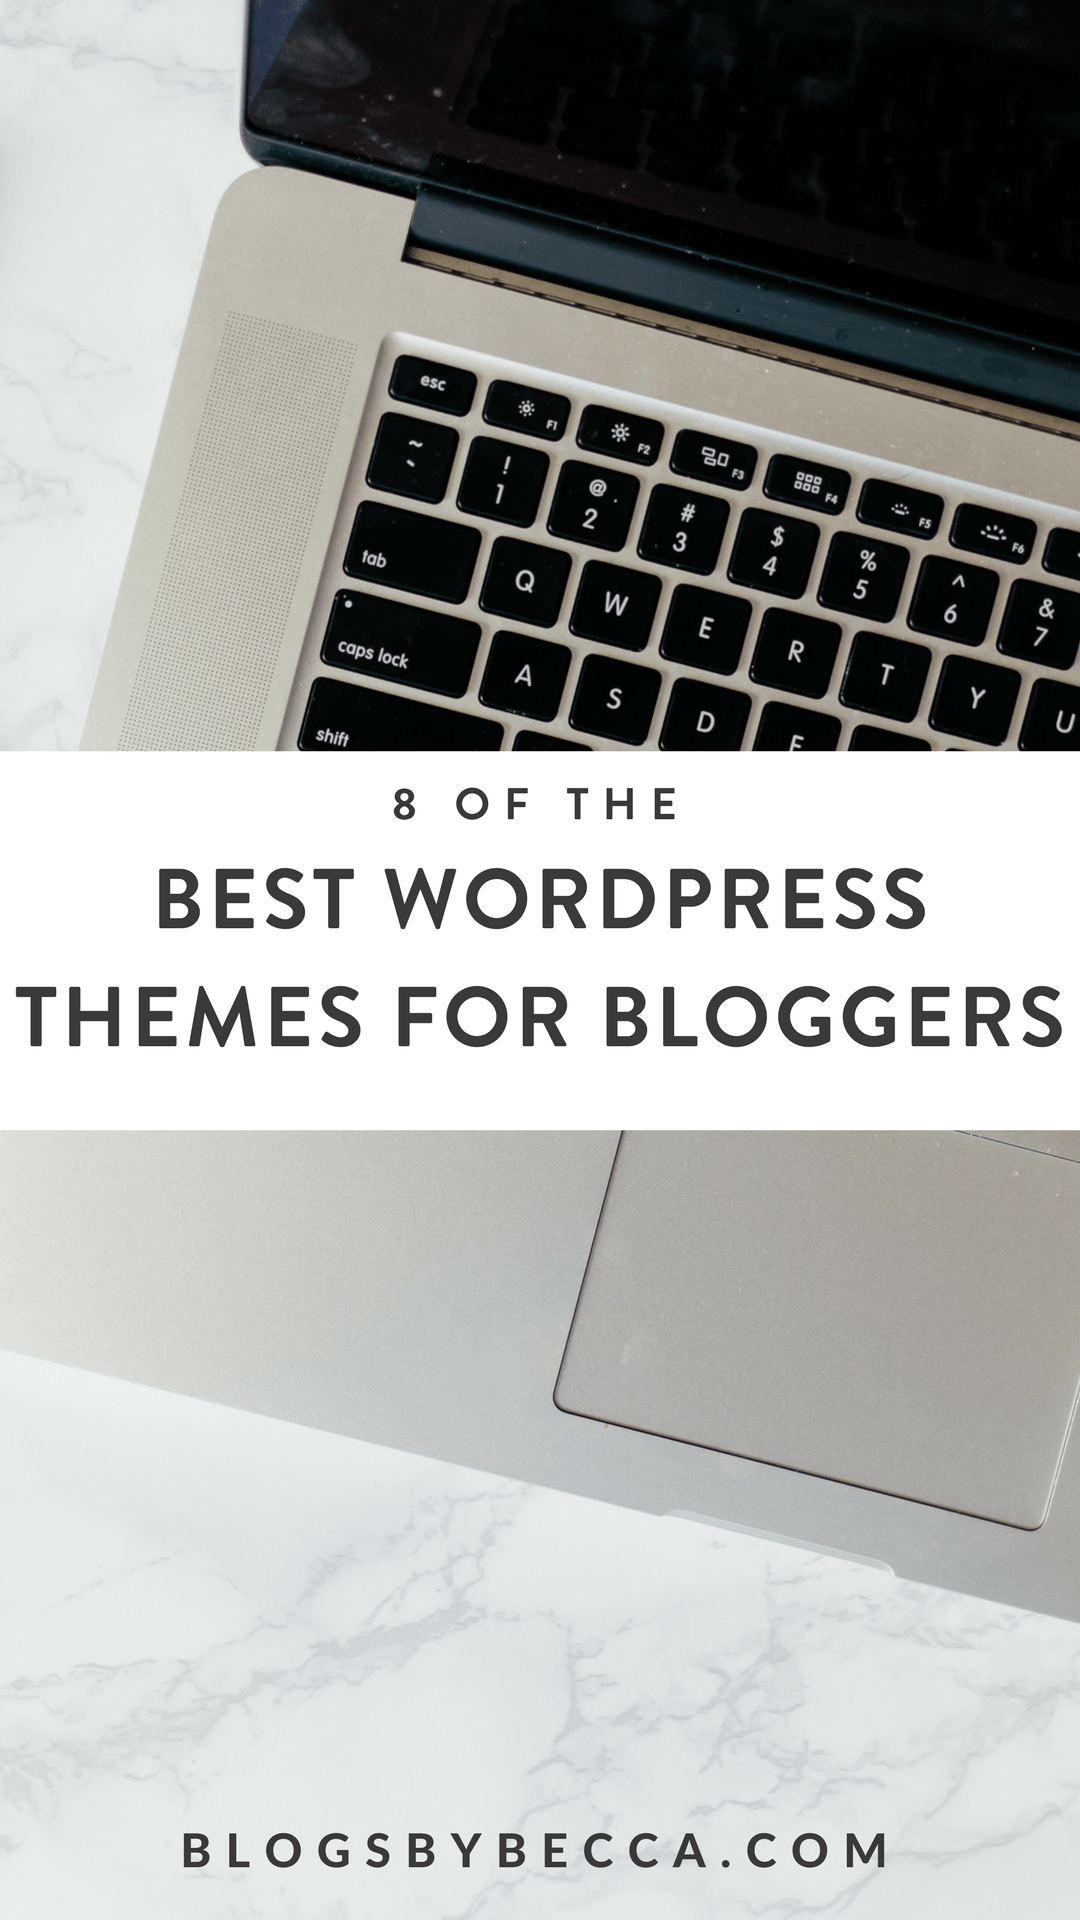 The Best Wordpress Themes for Bloggers! These Wordpress themes are great for beginner bloggers or advanced bloggers. Designing your blog is easy with these themes. Click through to see them all! #blogandbiz, #blogging, #blogtips, #wordpress